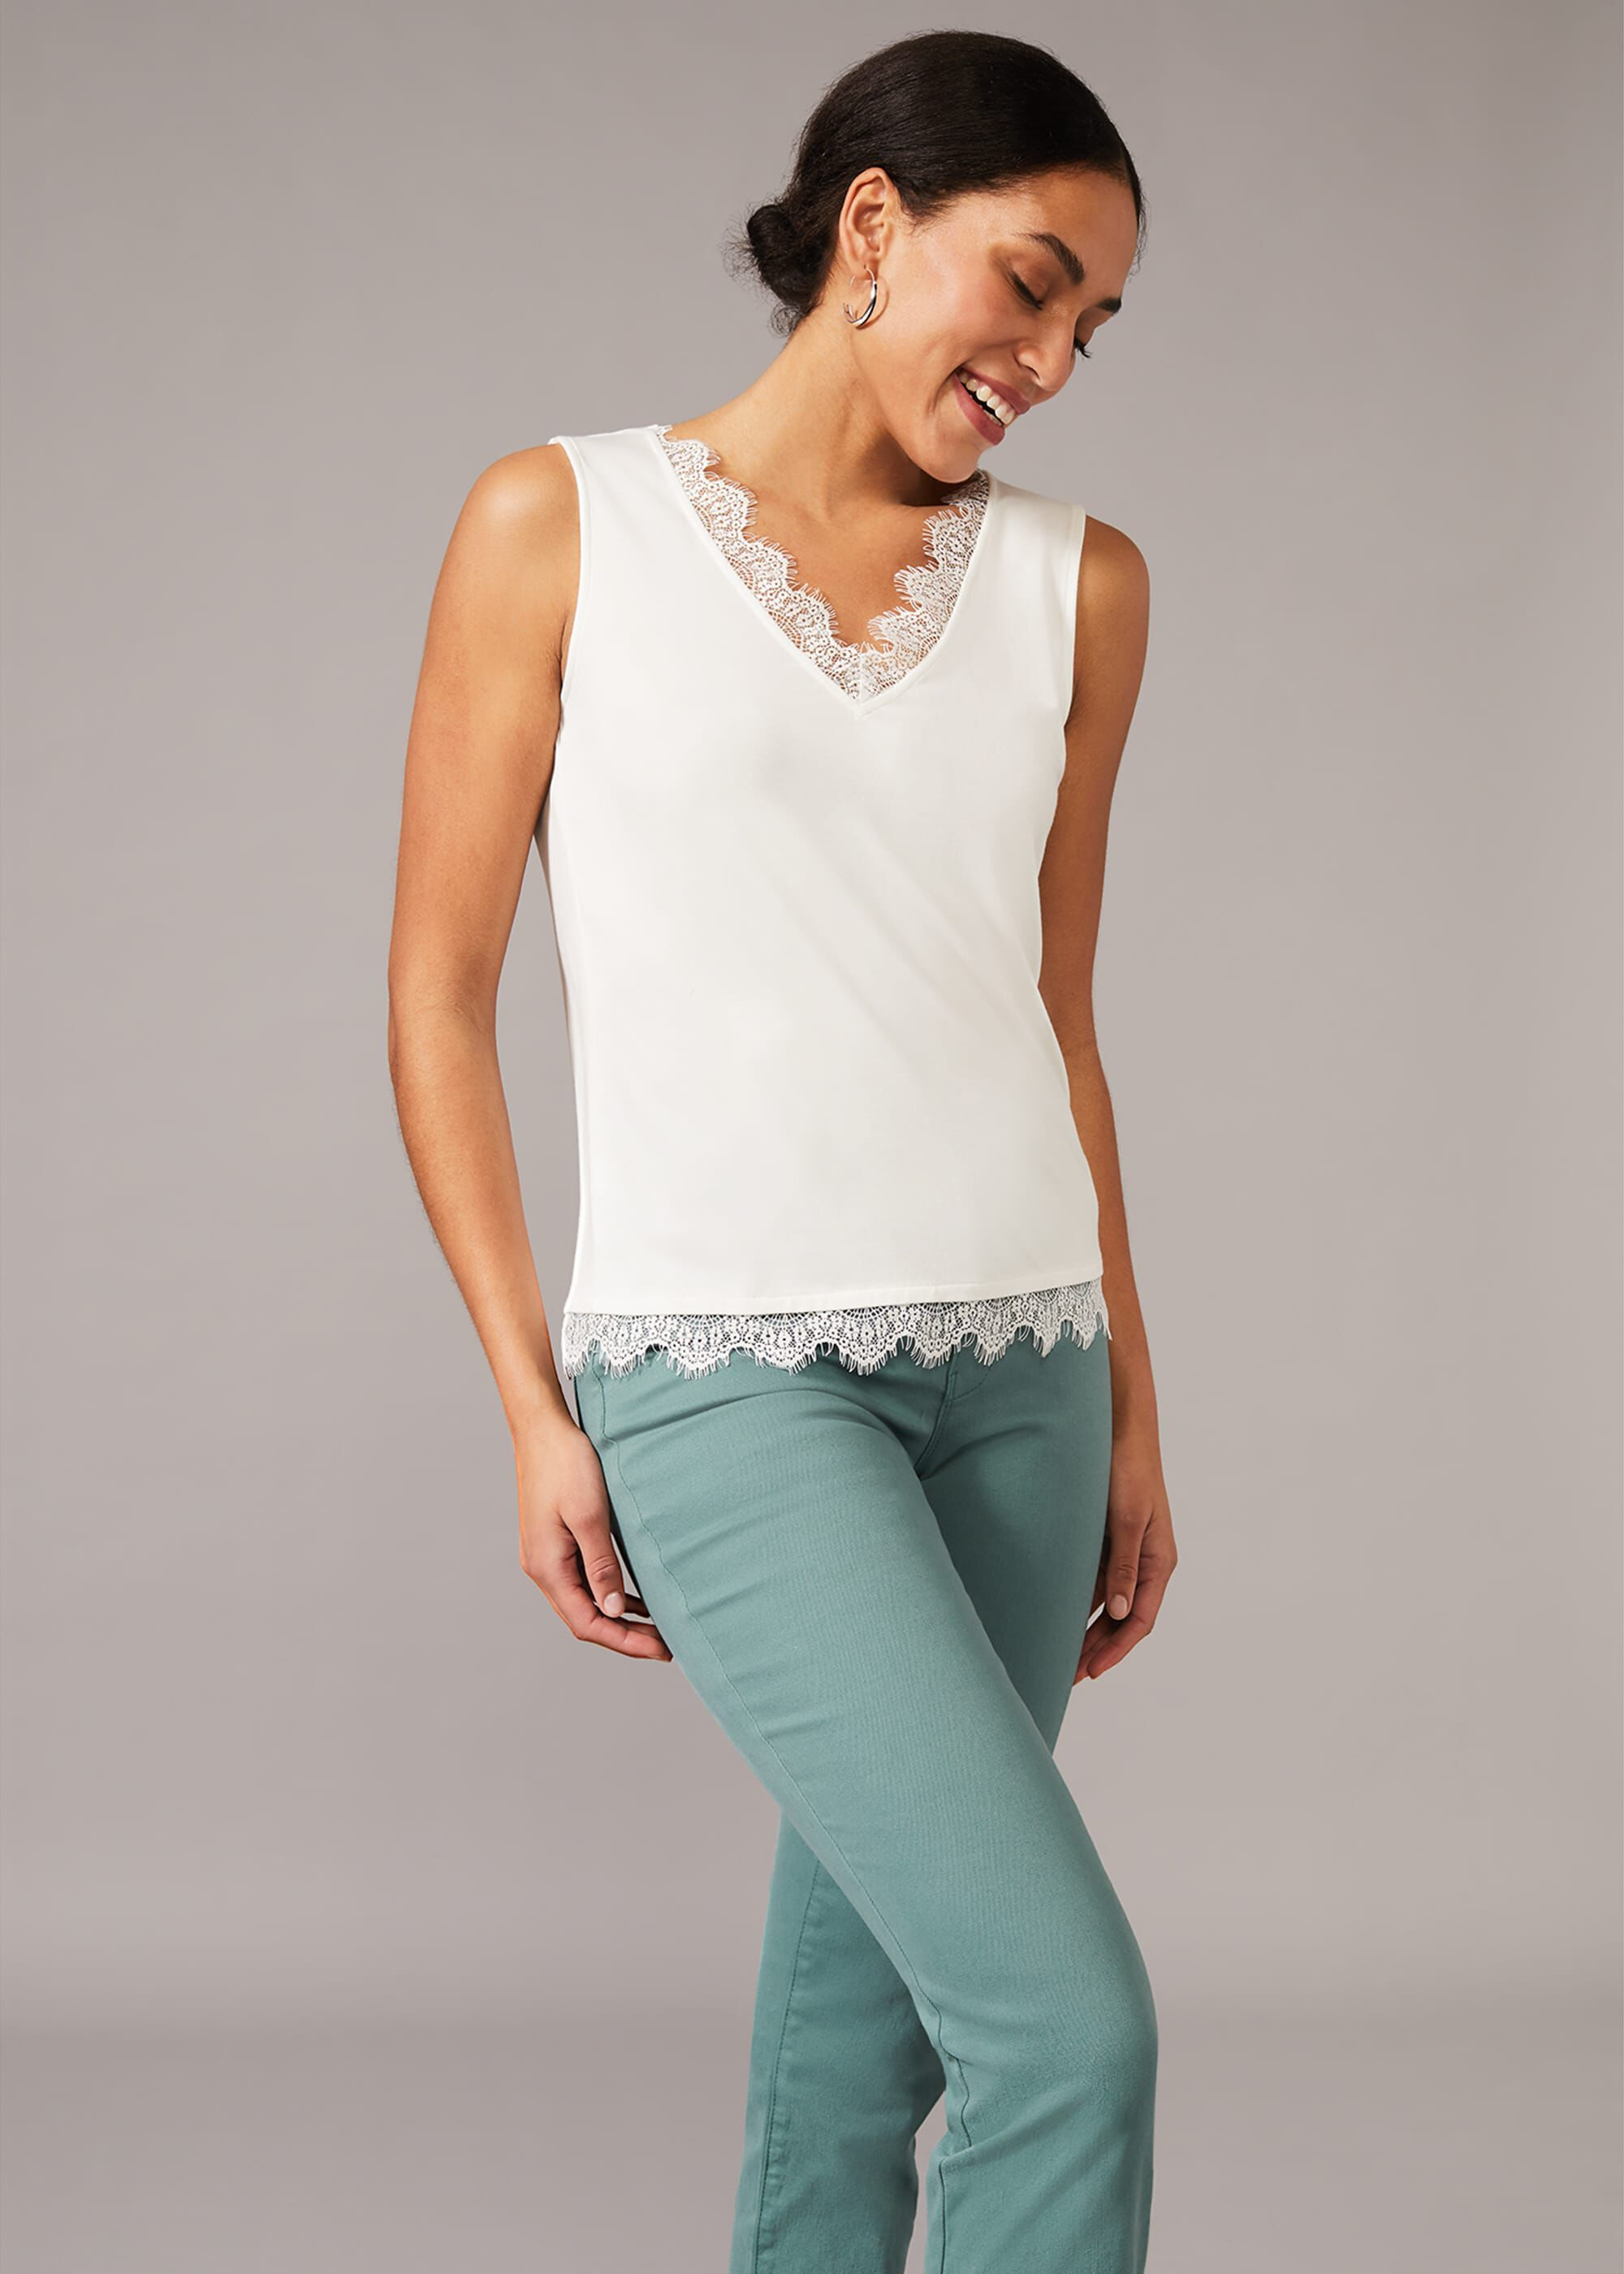 Phase Eight Ottie Lace Trim Vest Top, Cream, Camisole